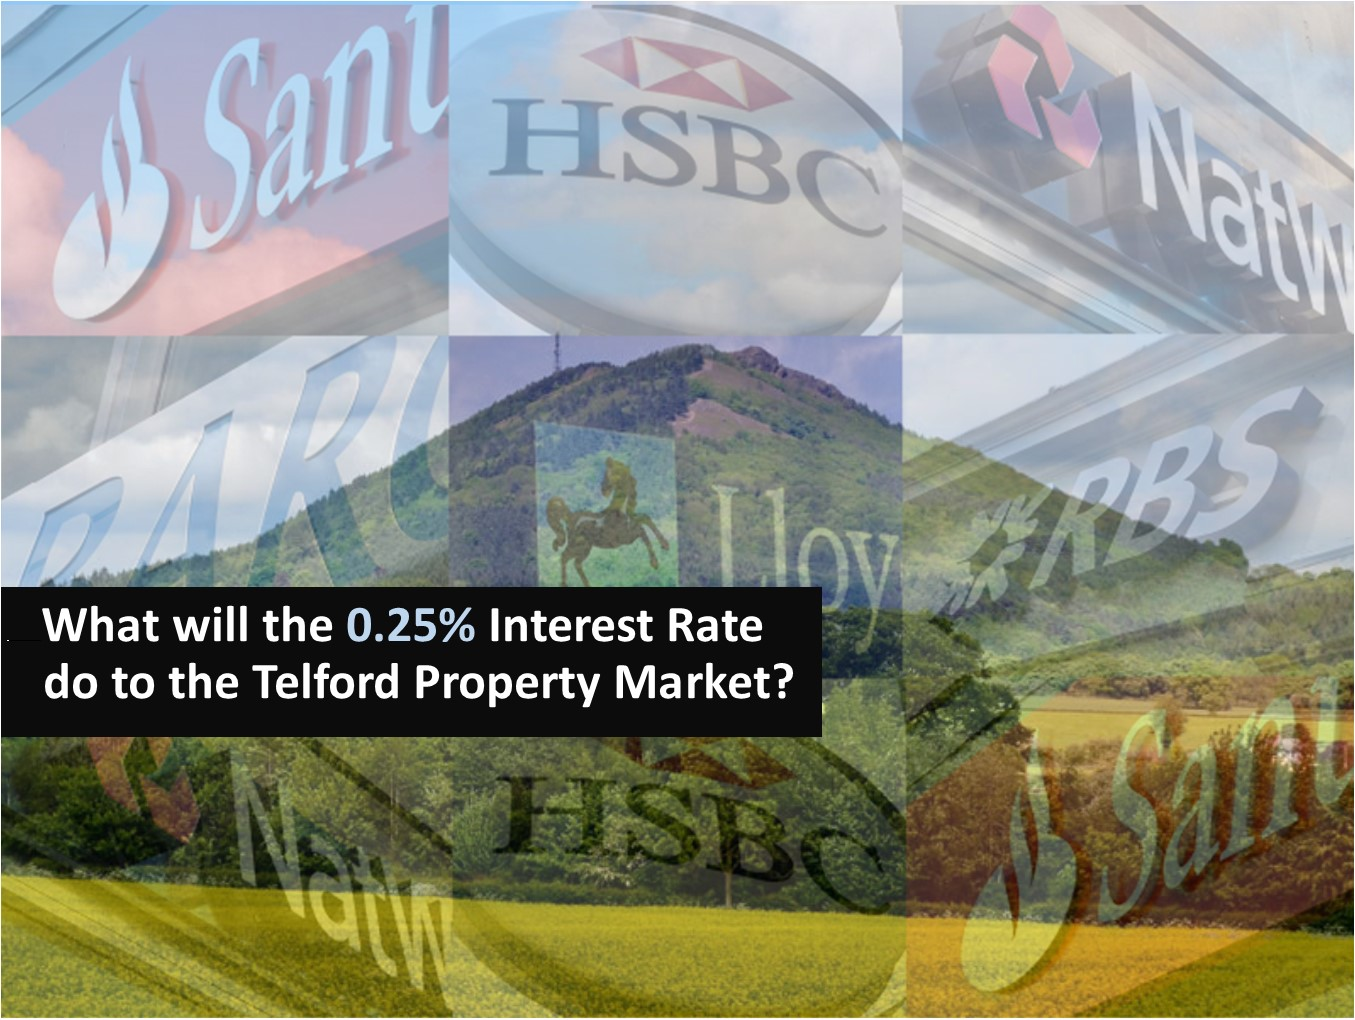 What will the 0.25% Interest Rate do to the Telford Property Market?